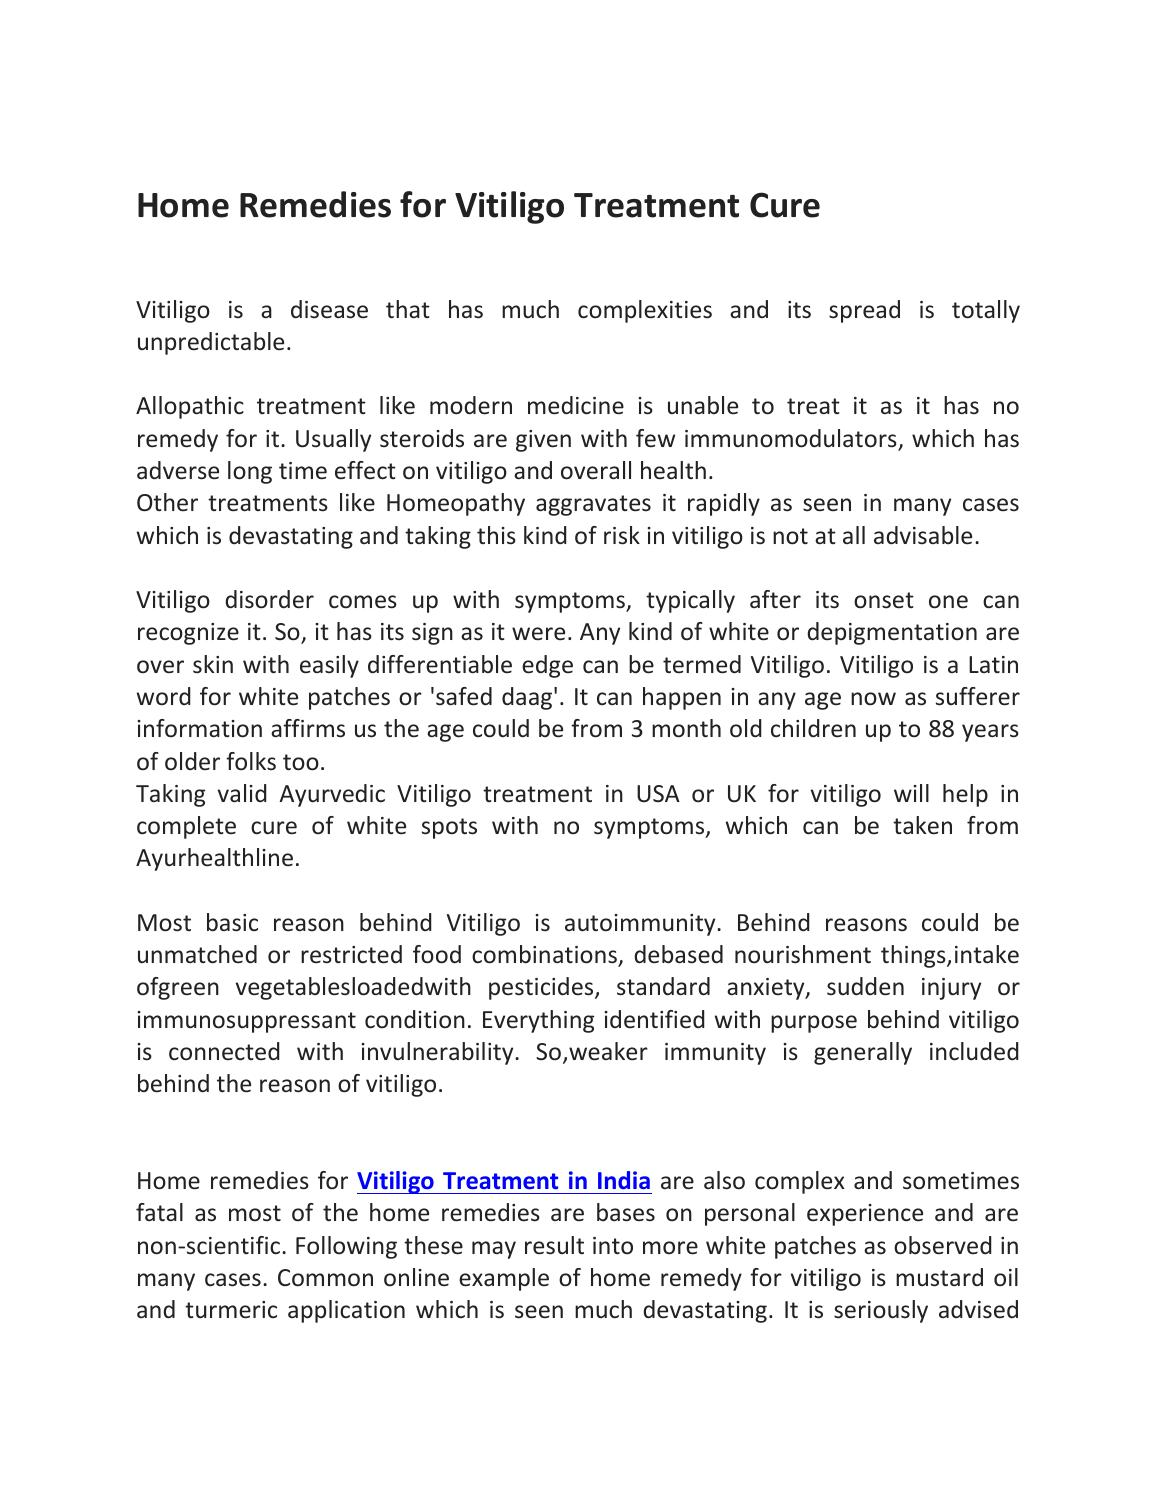 Home Remedies For Vitiligo Treatment Cure By Ravish Kamal Issuu